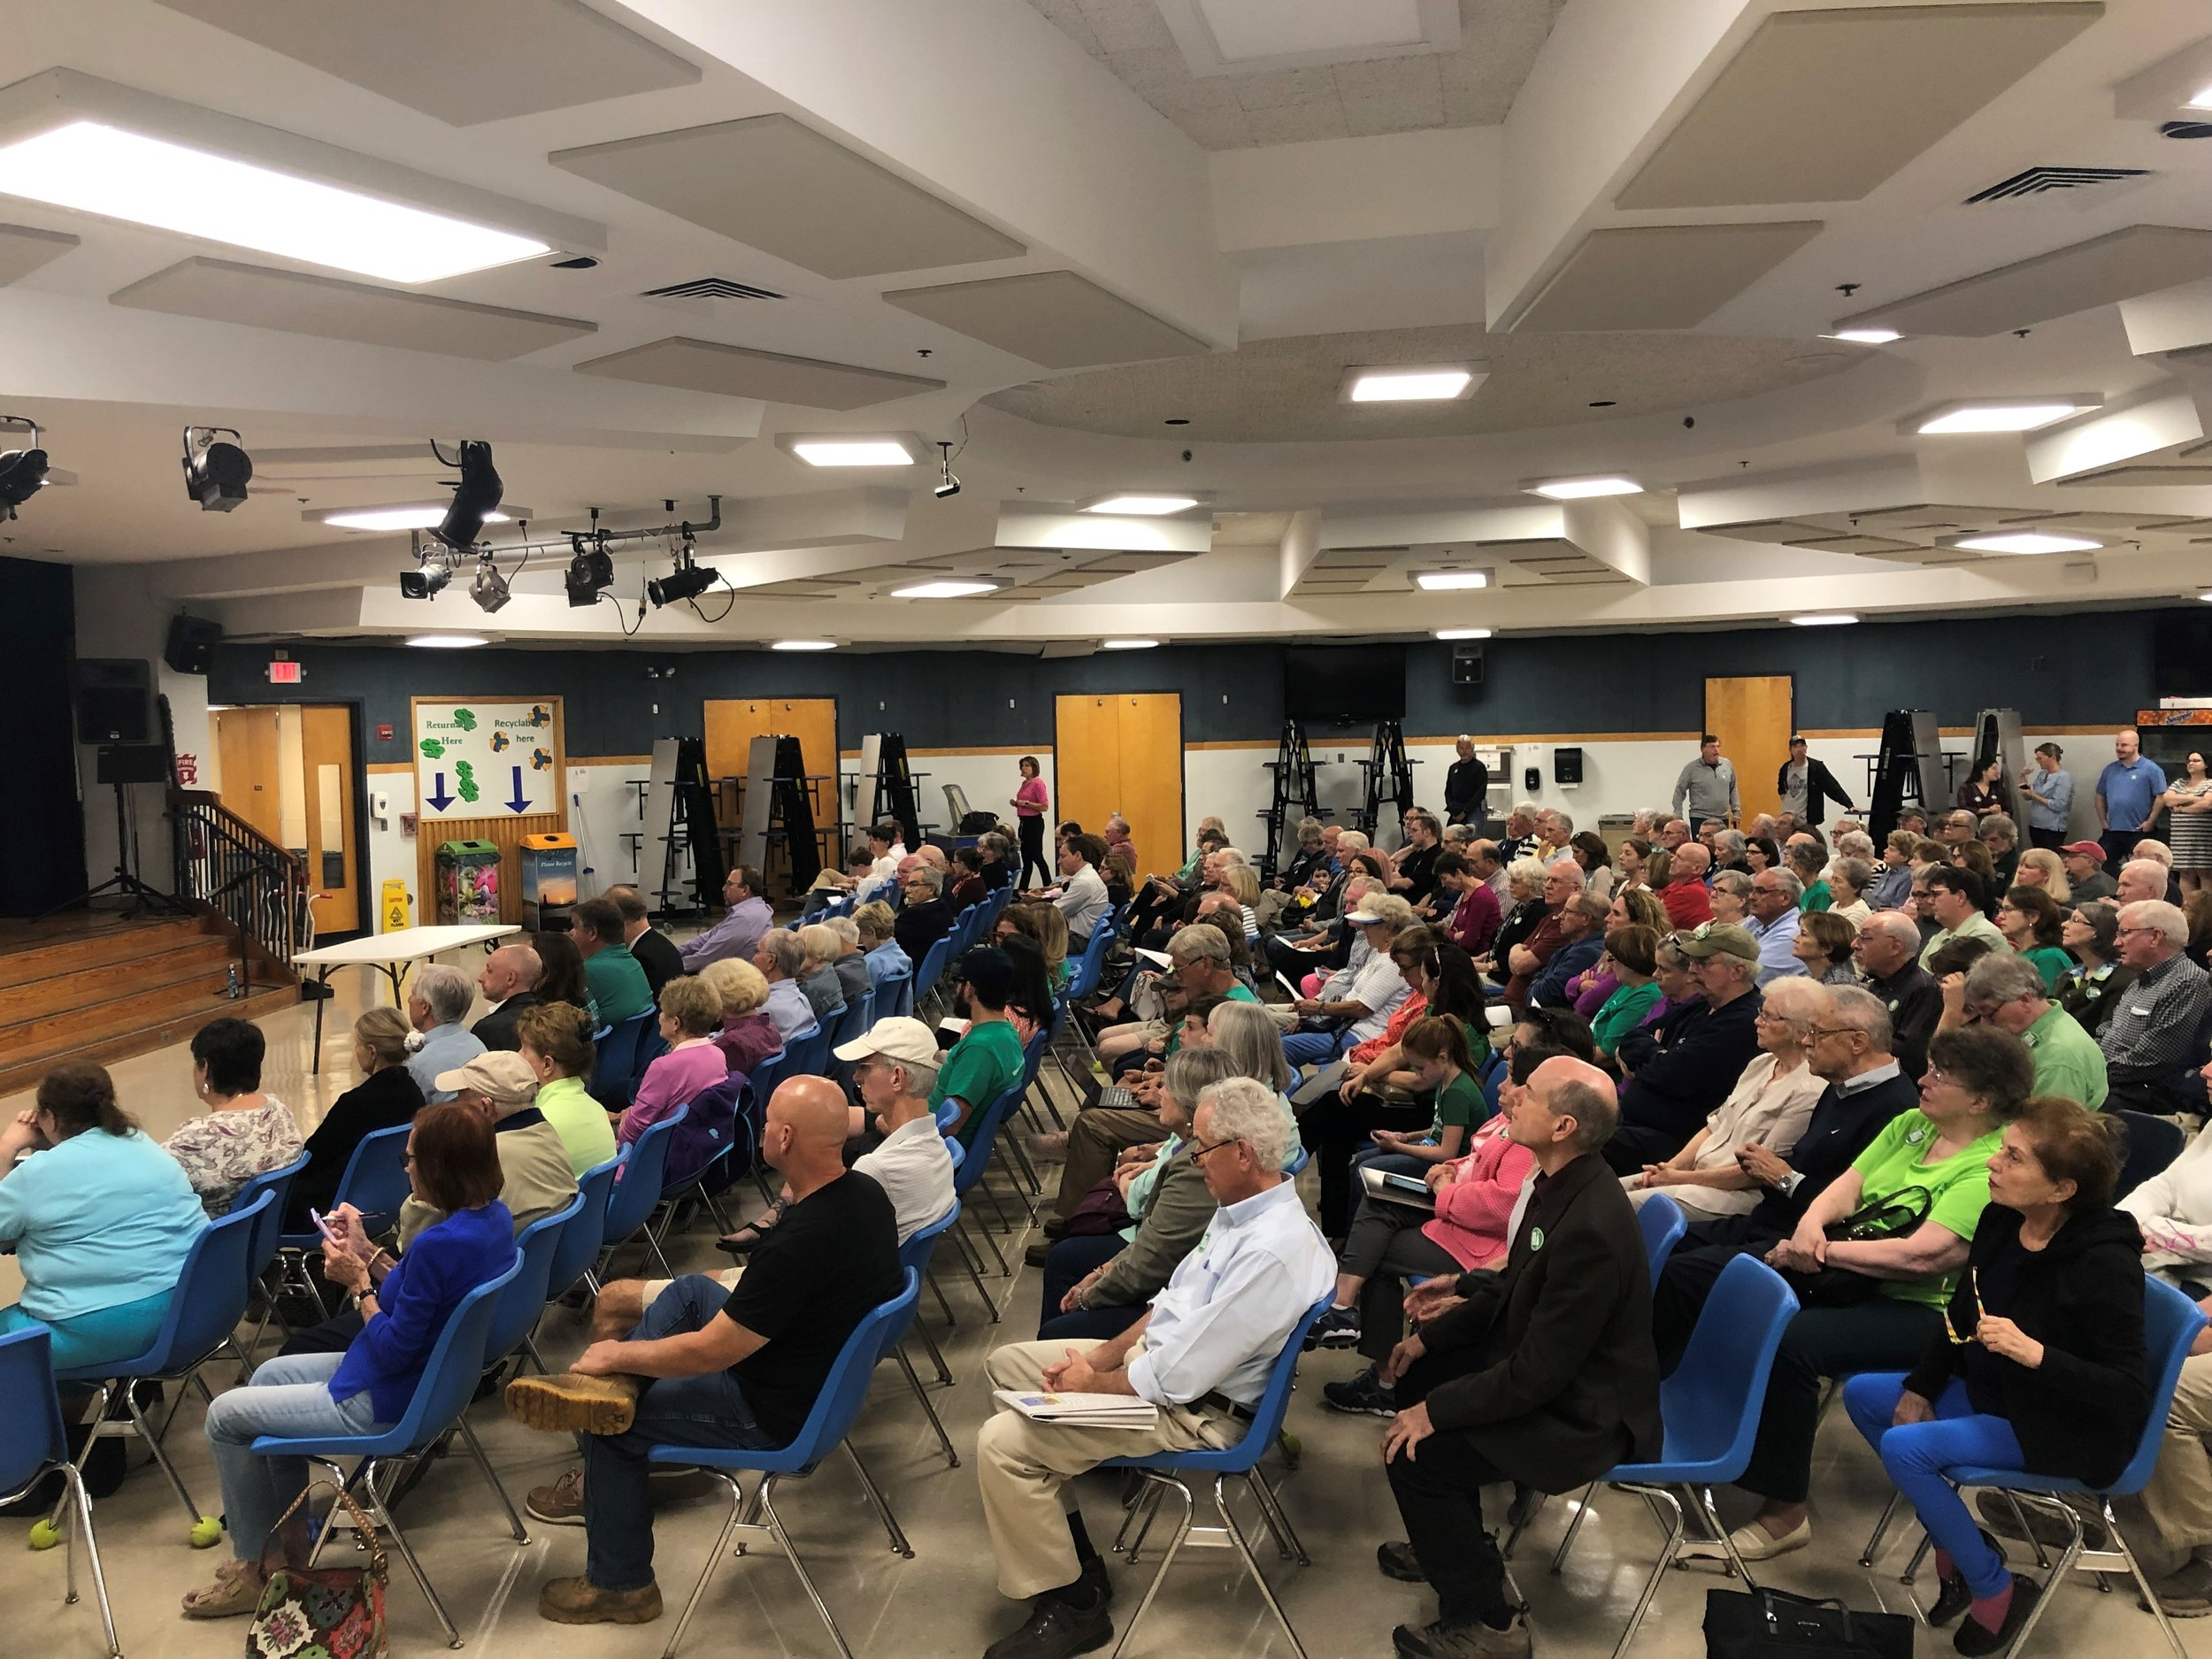 It was a packed house at the 9-10-19 P&Z meeting when the commission voted